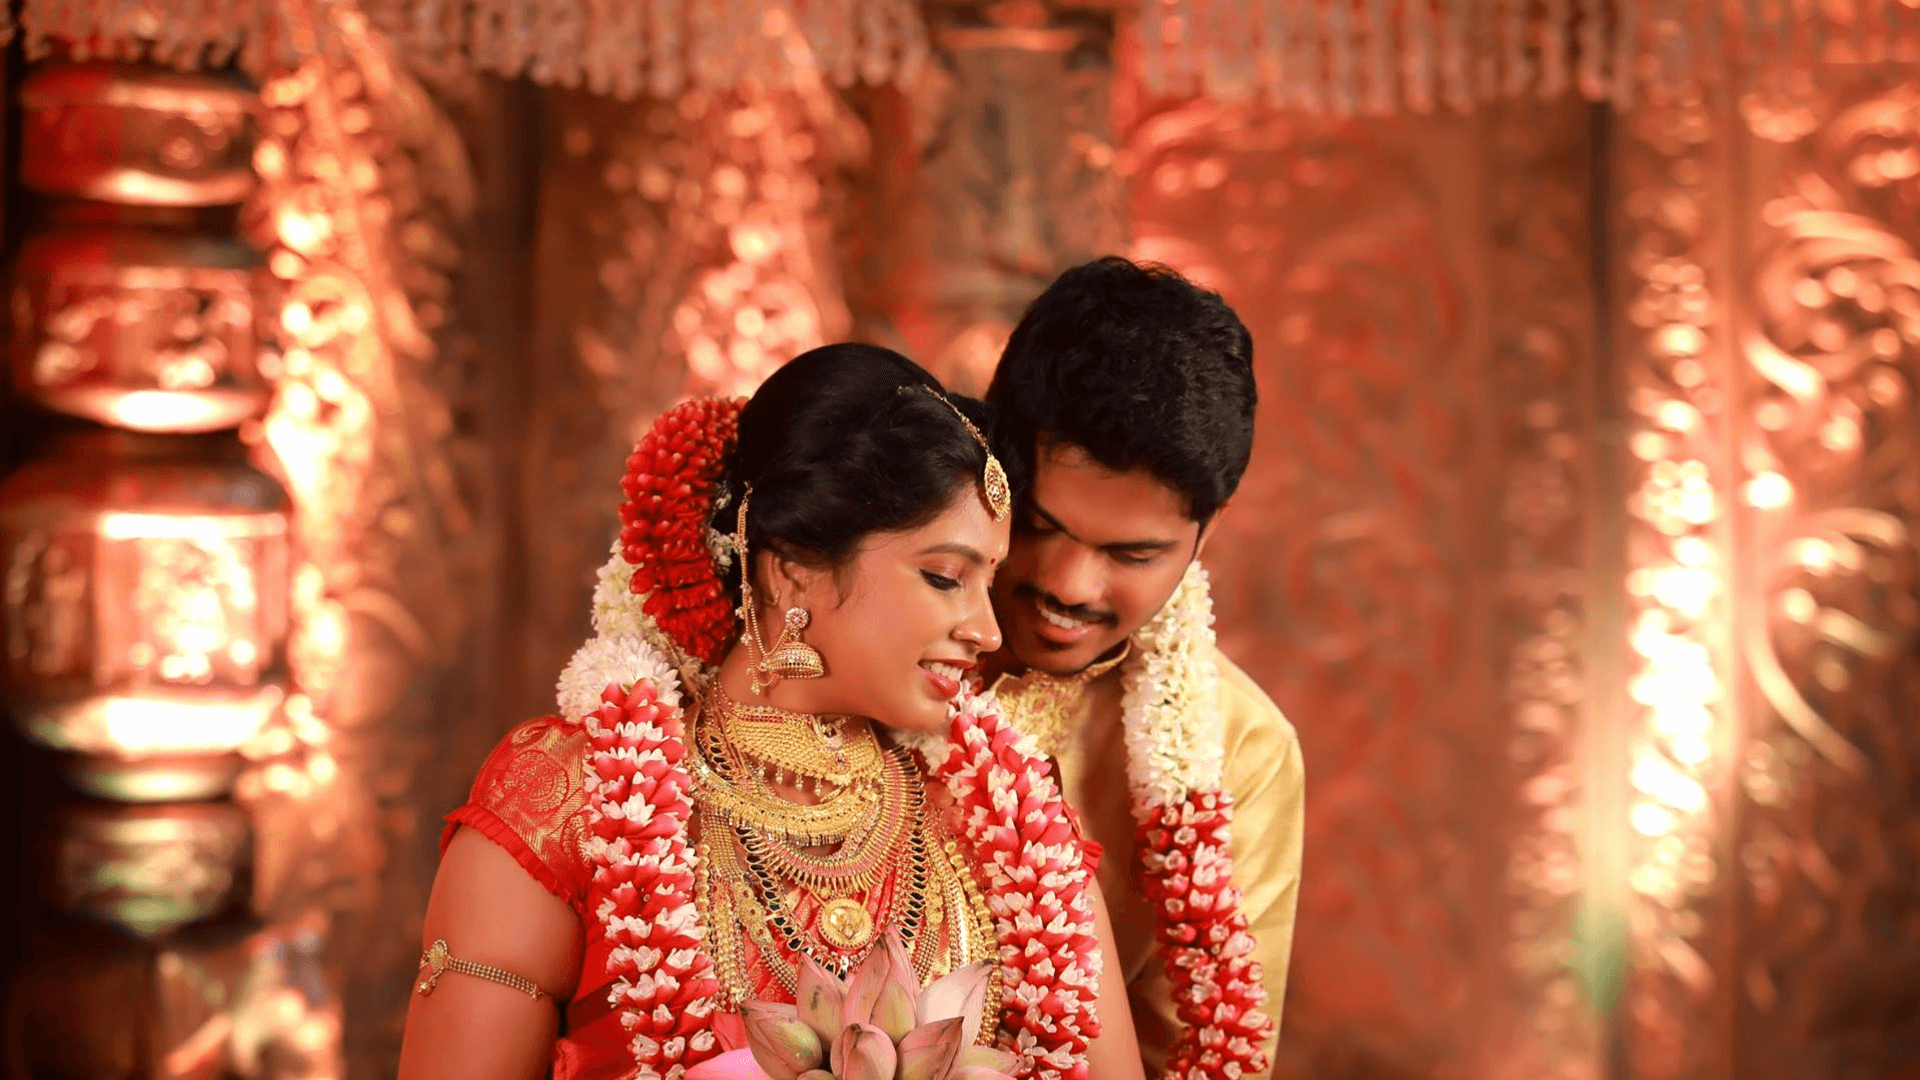 Free Kerala matrimony for Chakkala Nair community